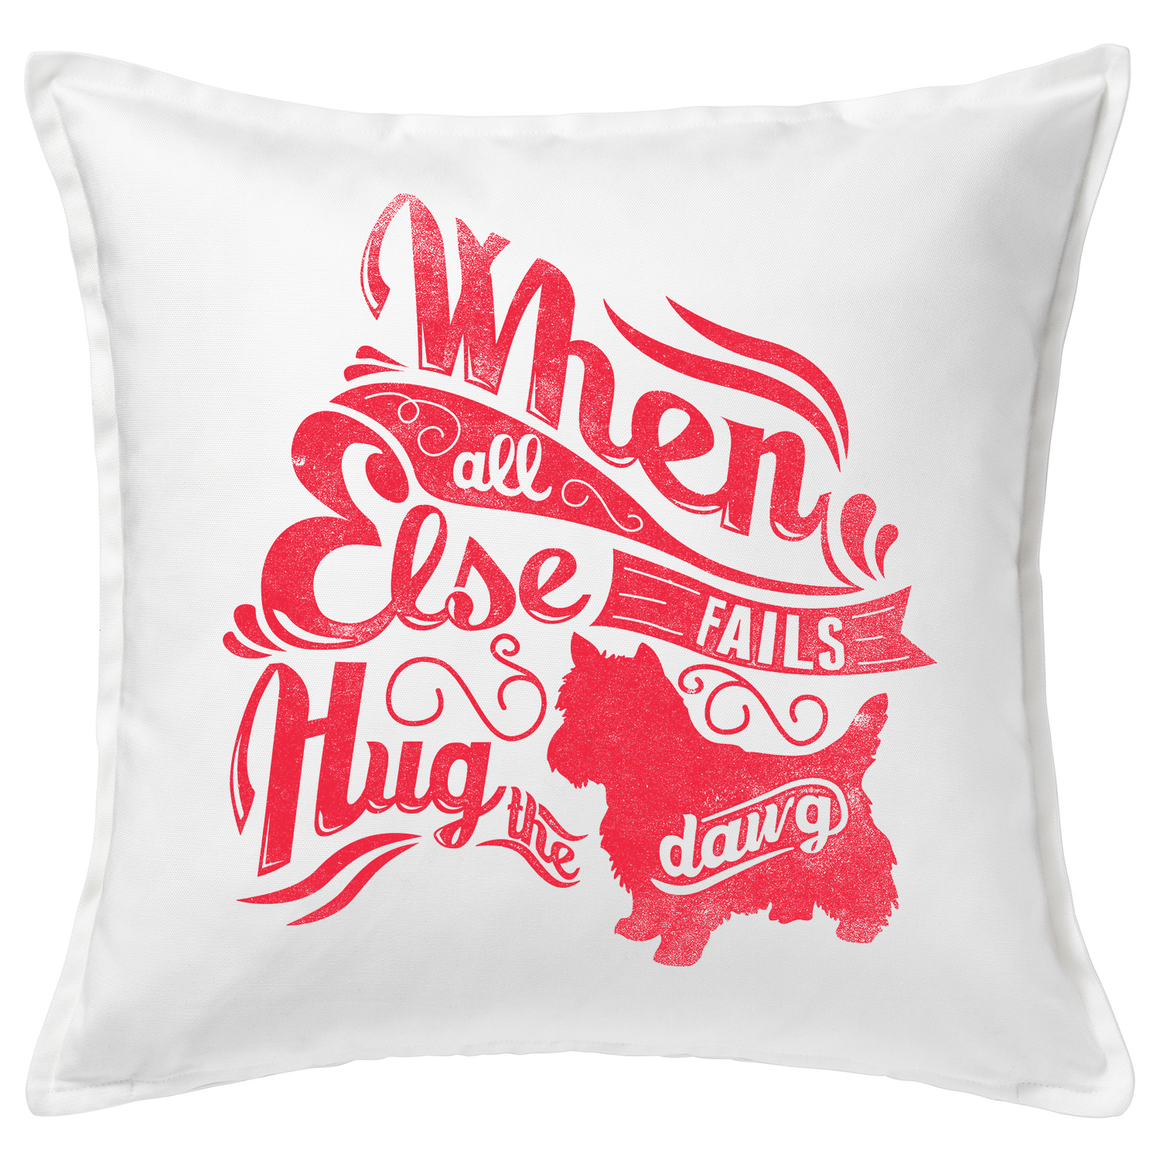 Hug The Dawg 20x20 Throw Cushion